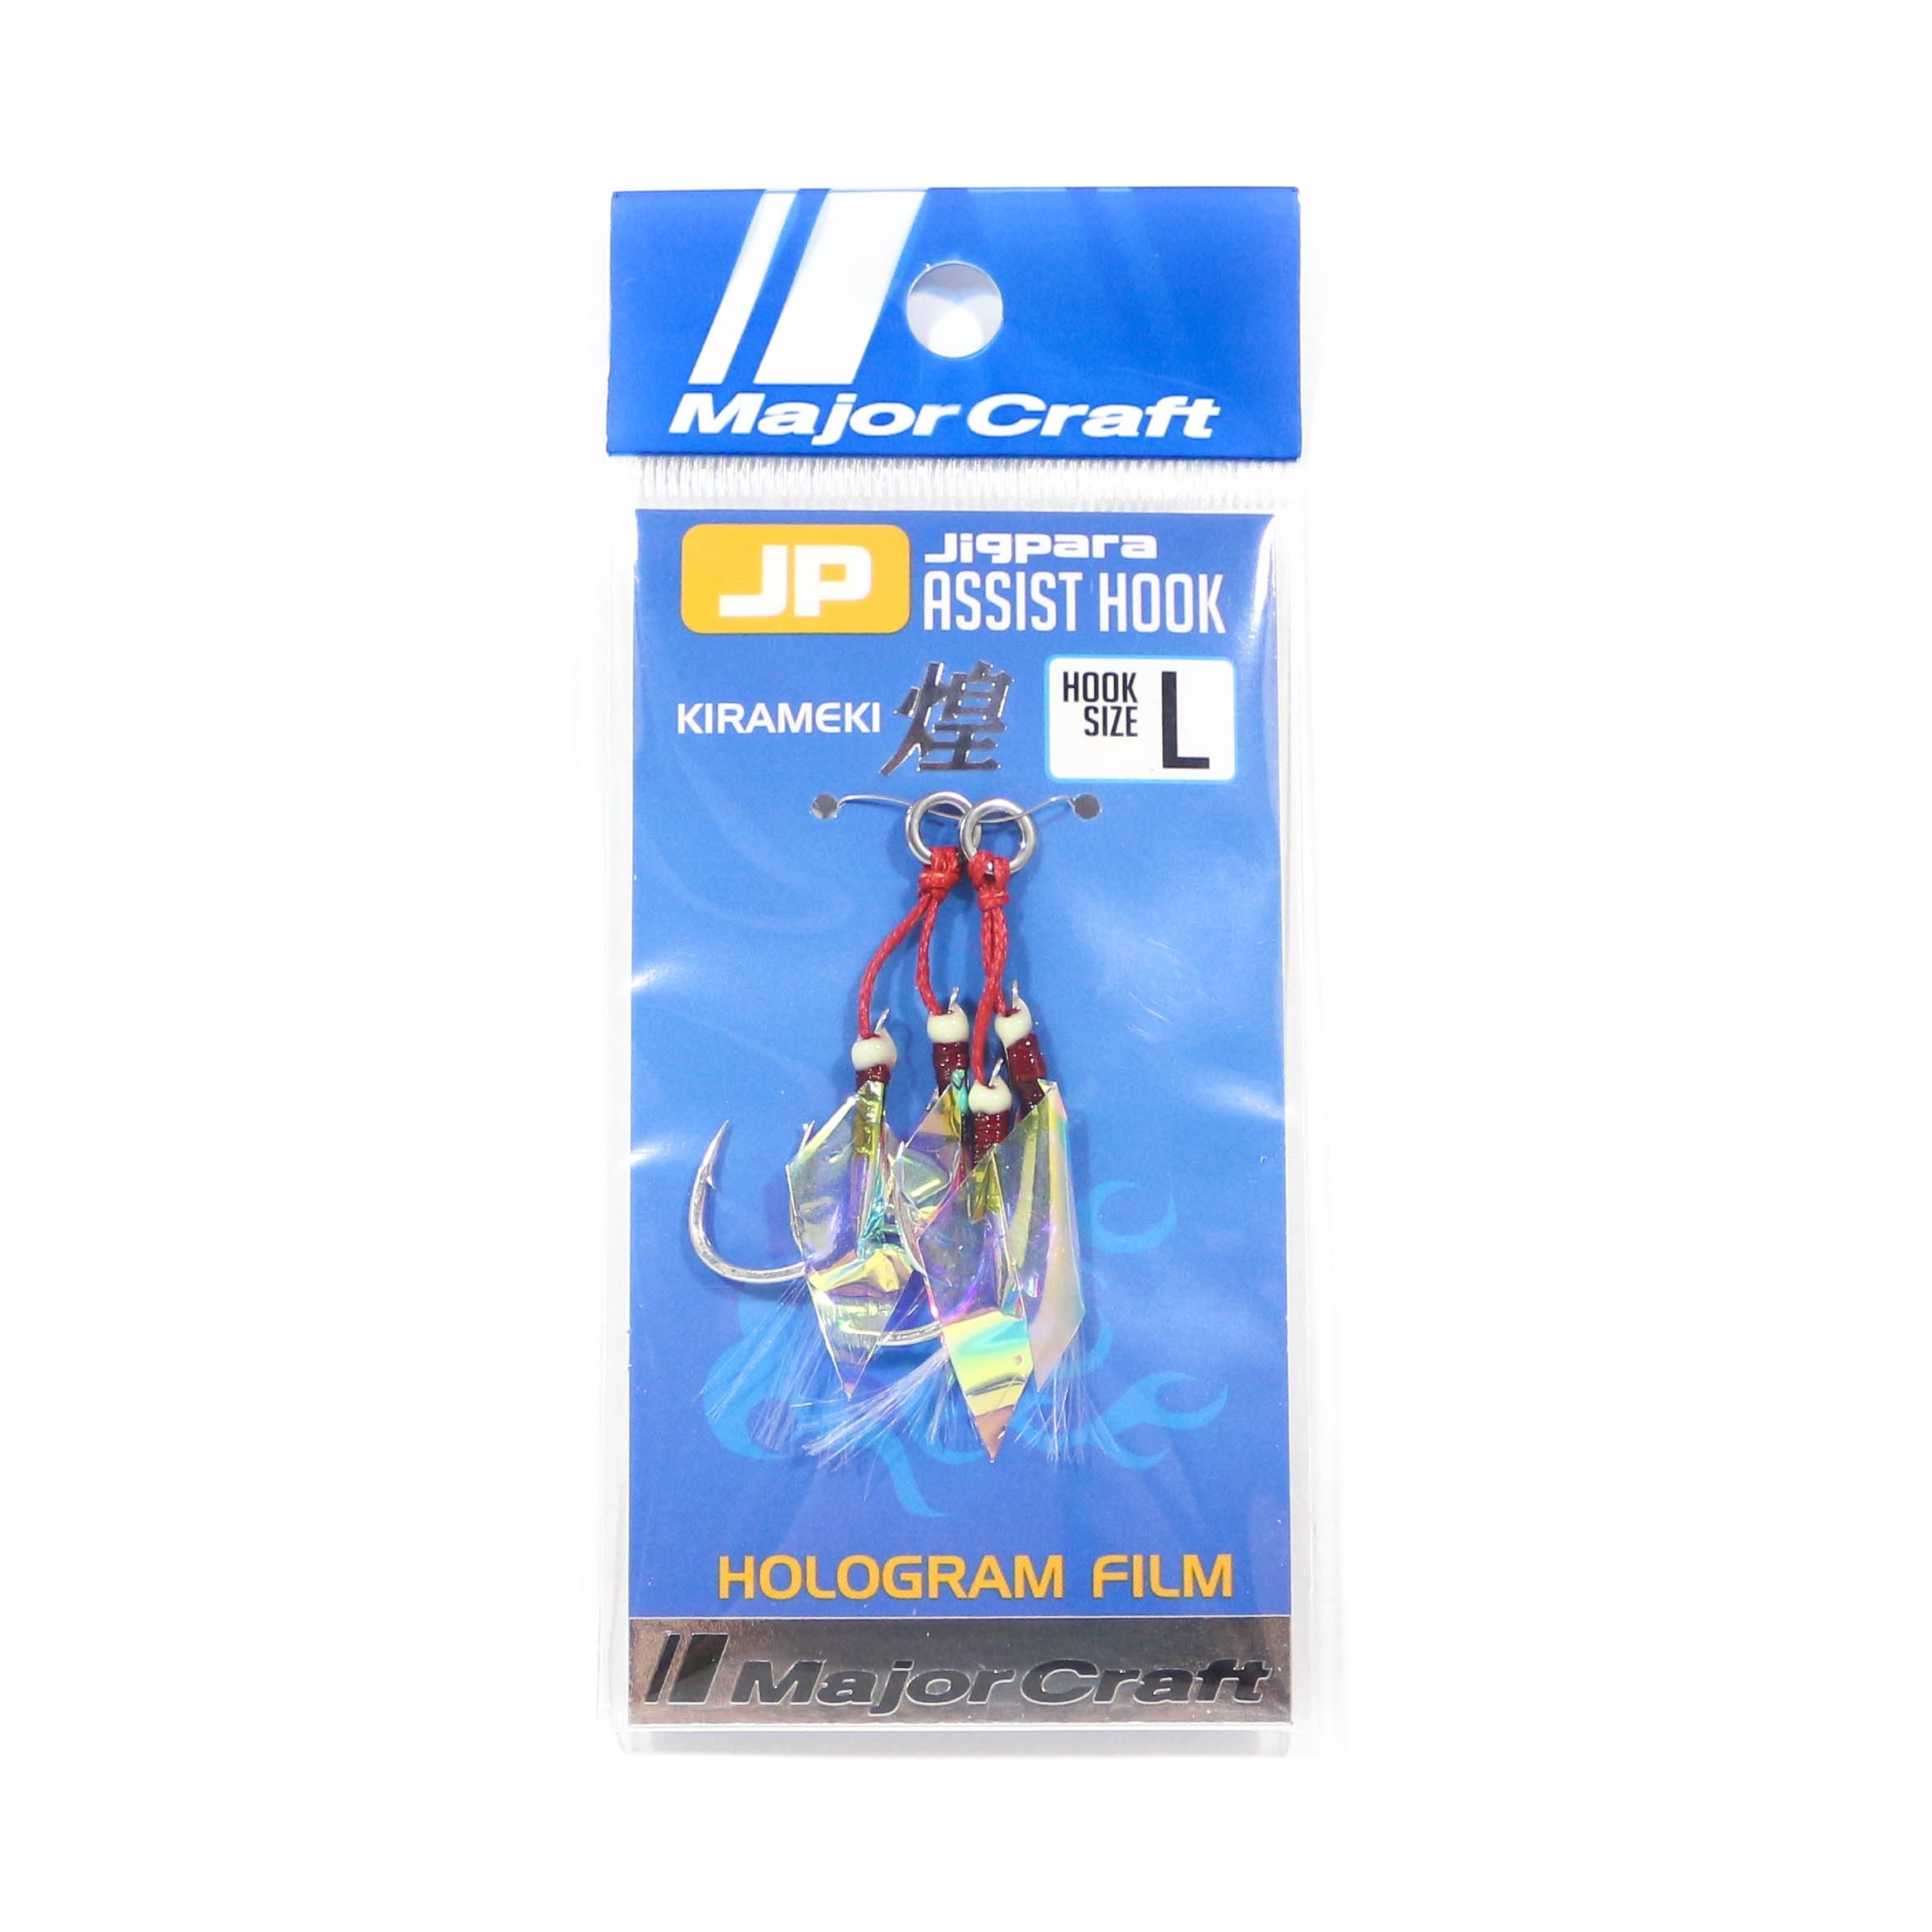 Major Craft JPS-Assist Holo Double Hooks Size L (Size 1/0) 2 pc per pack (4524)